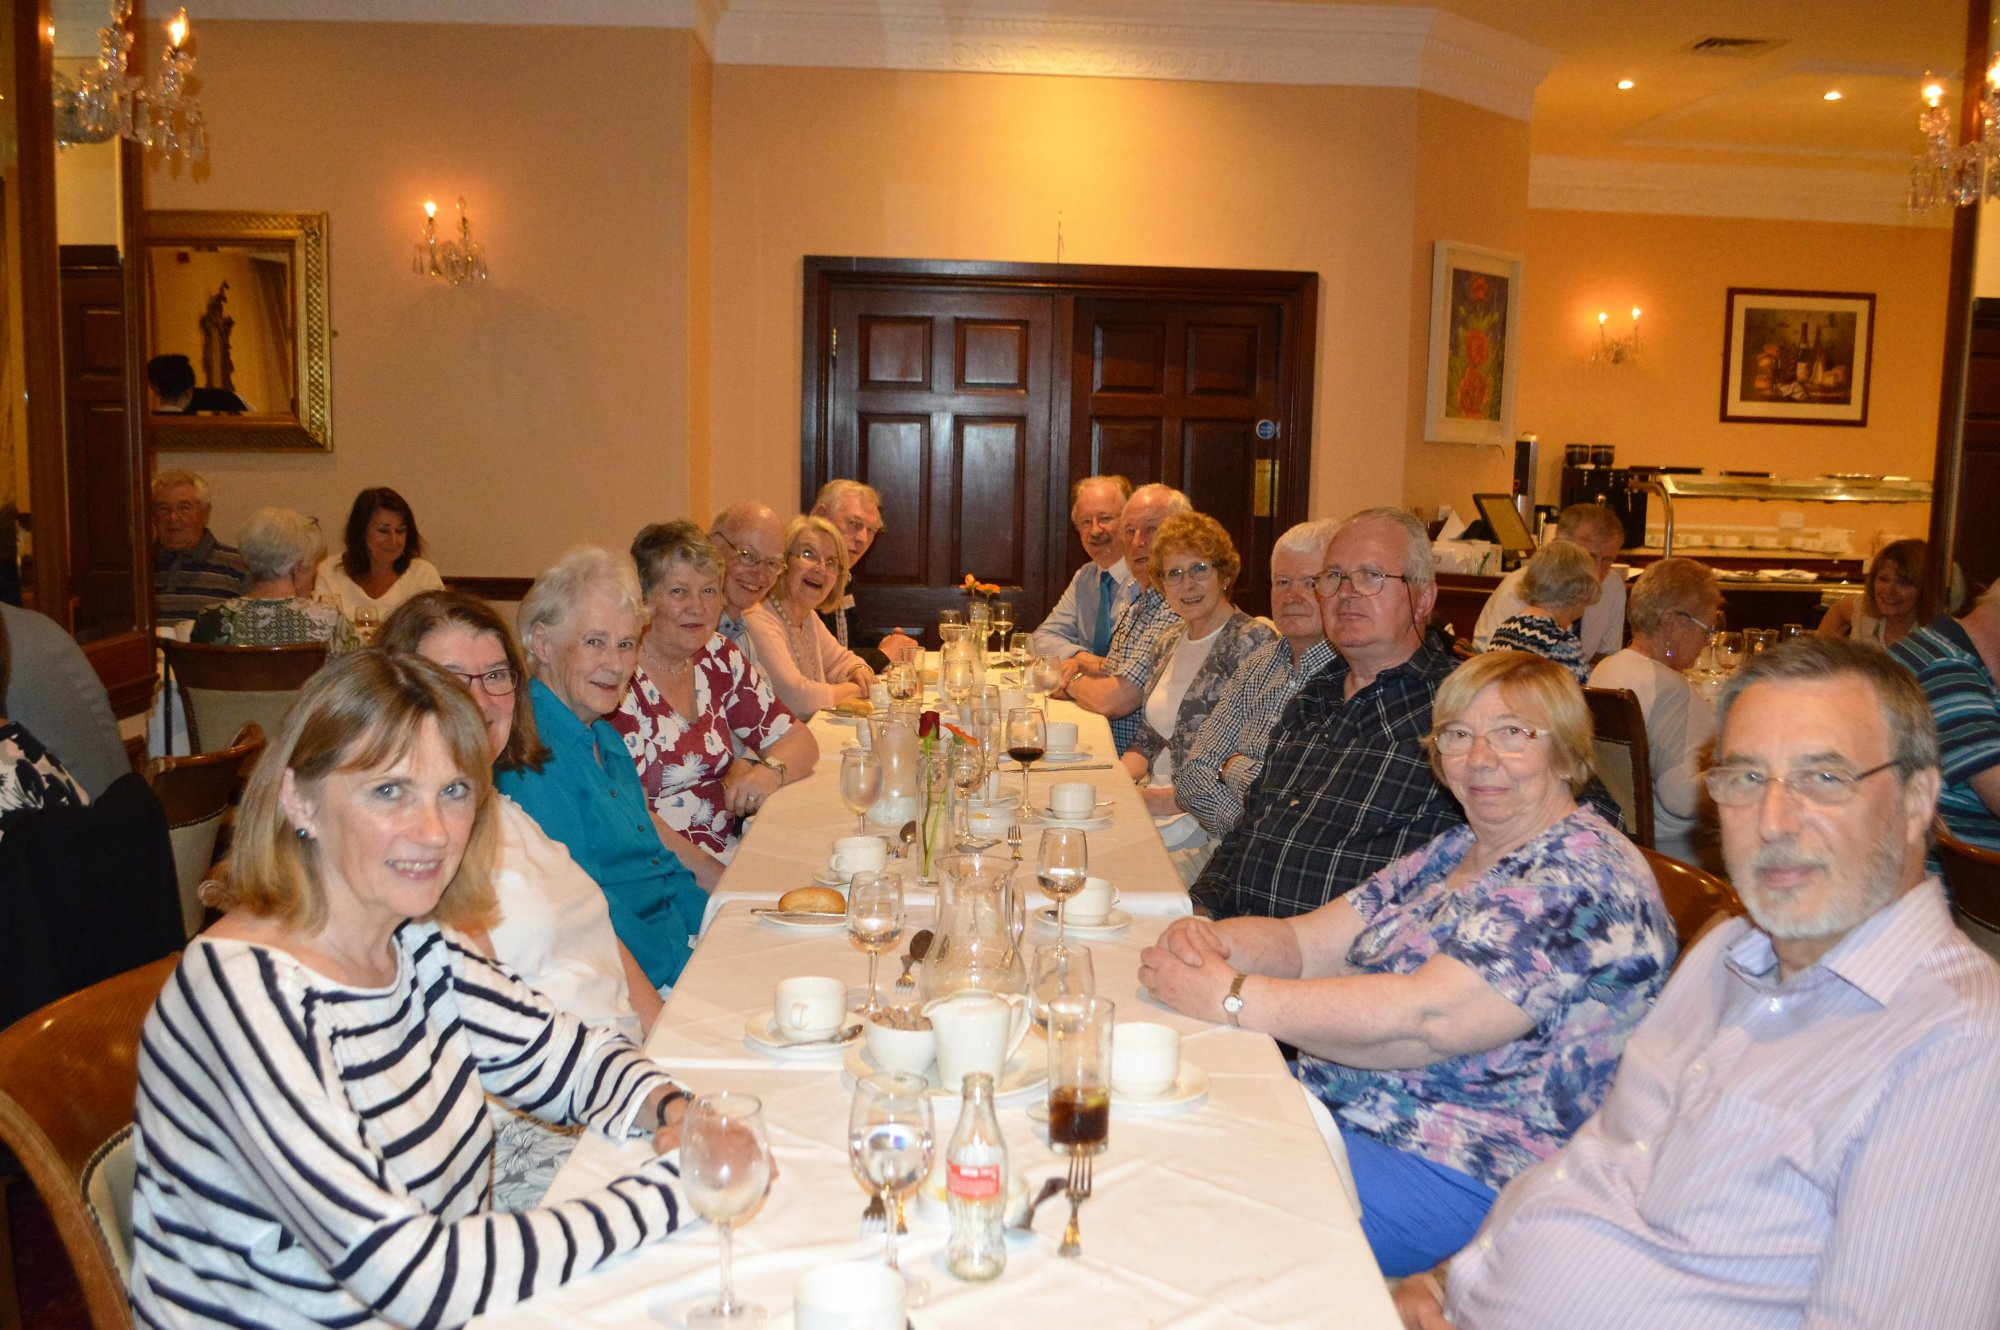 Some of the delegates at dinner